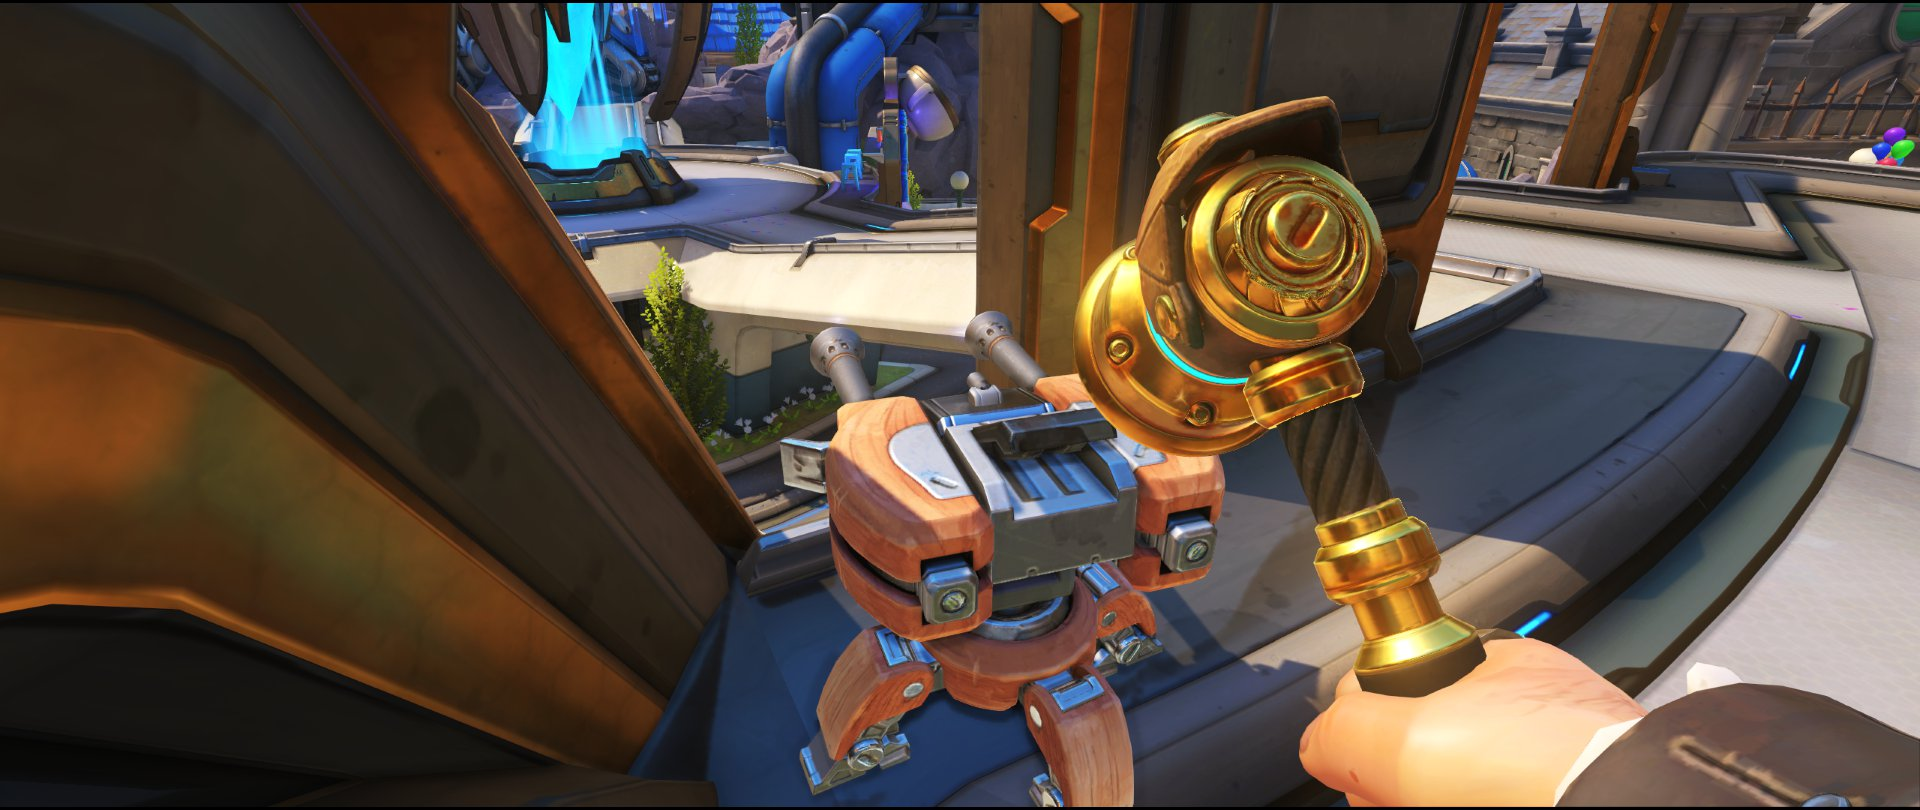 All+left+yellow+panels+turret+placement+spot+Torbjorn+Blizzard+World+Overwatch